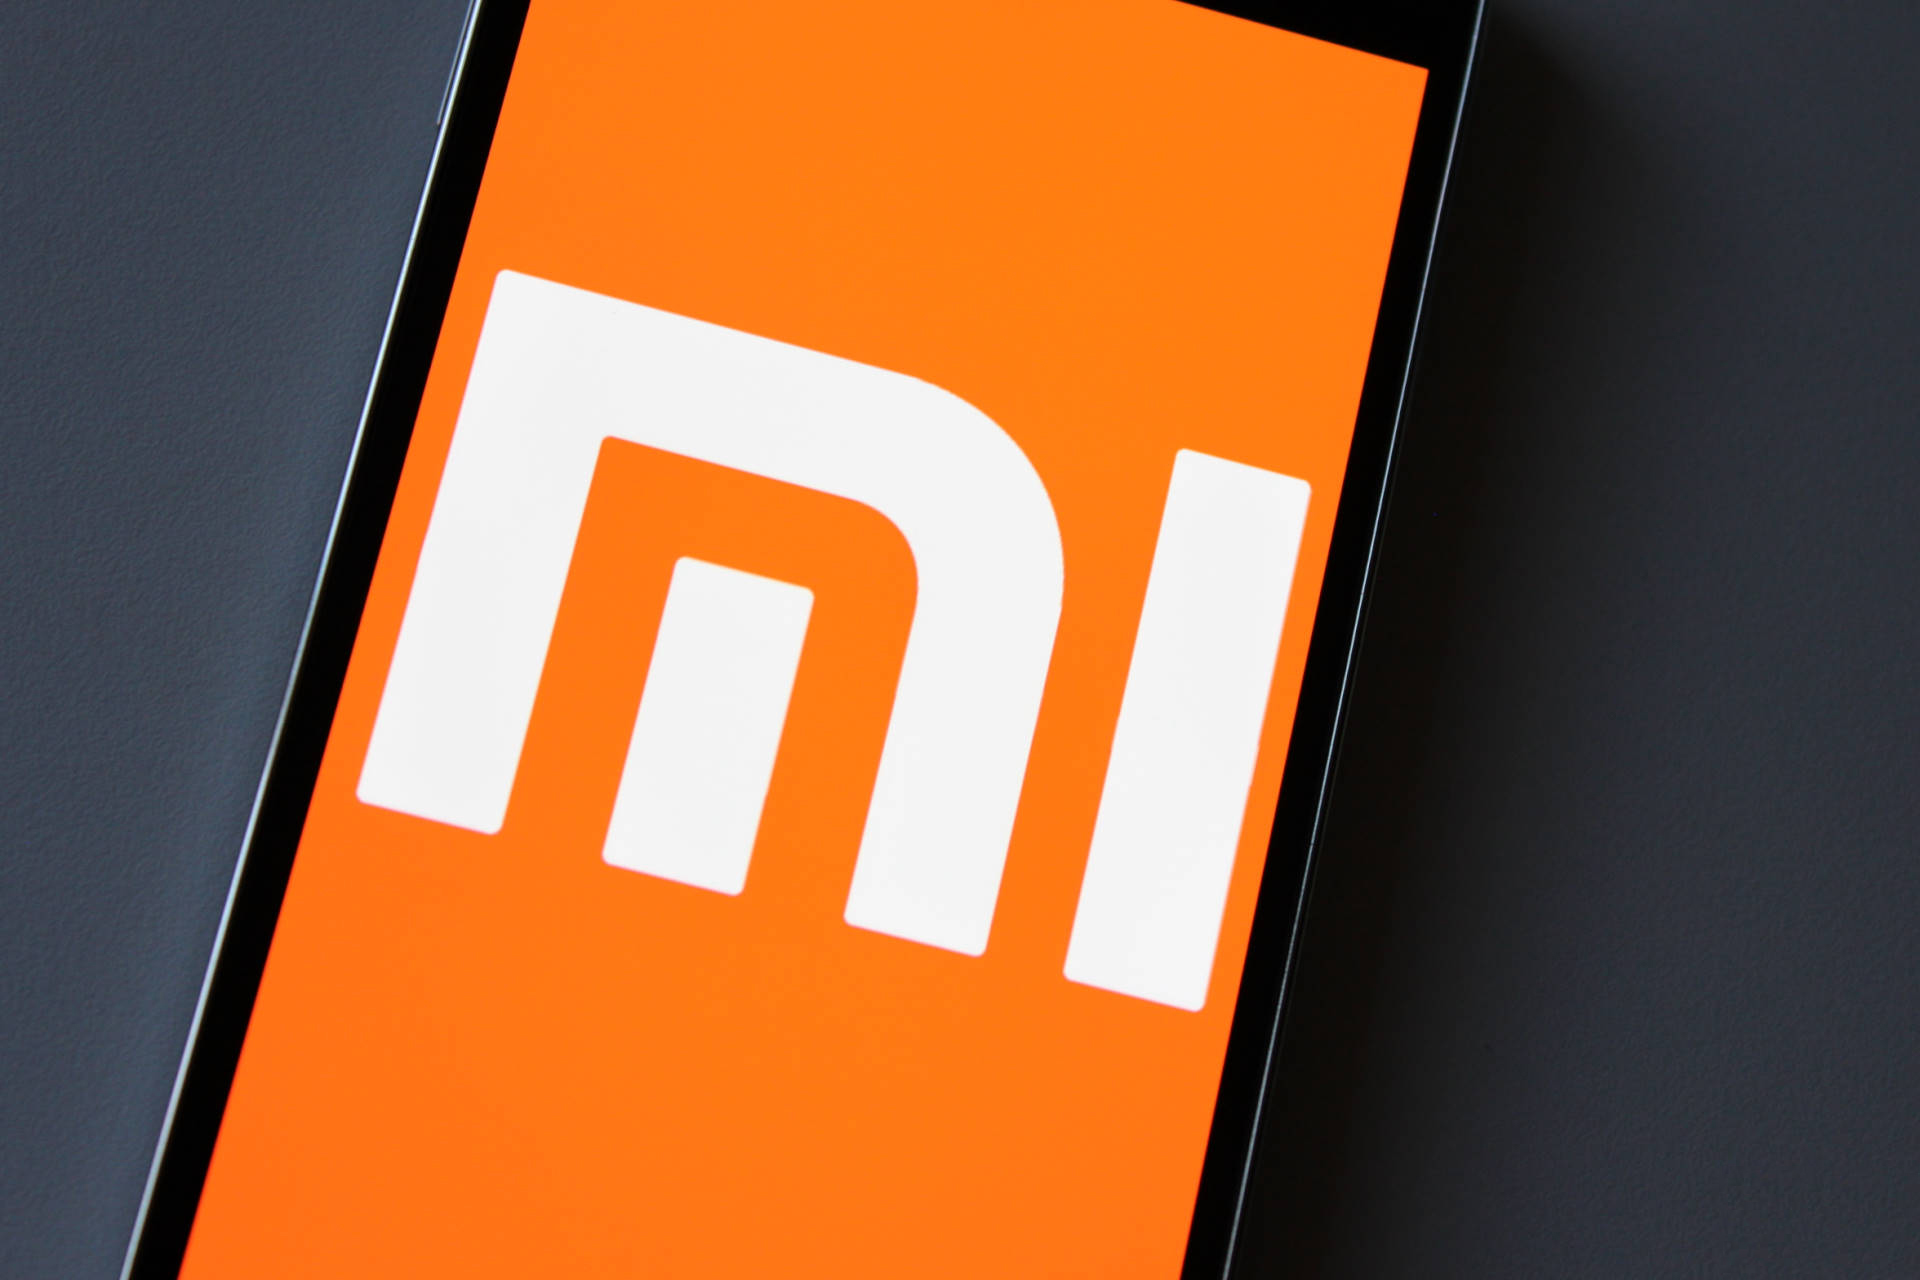 Xiaomi Mi4c vs Xiaomi Mi4i vs Xiaomi Mi4: Every difference there is to know between the three smartphones